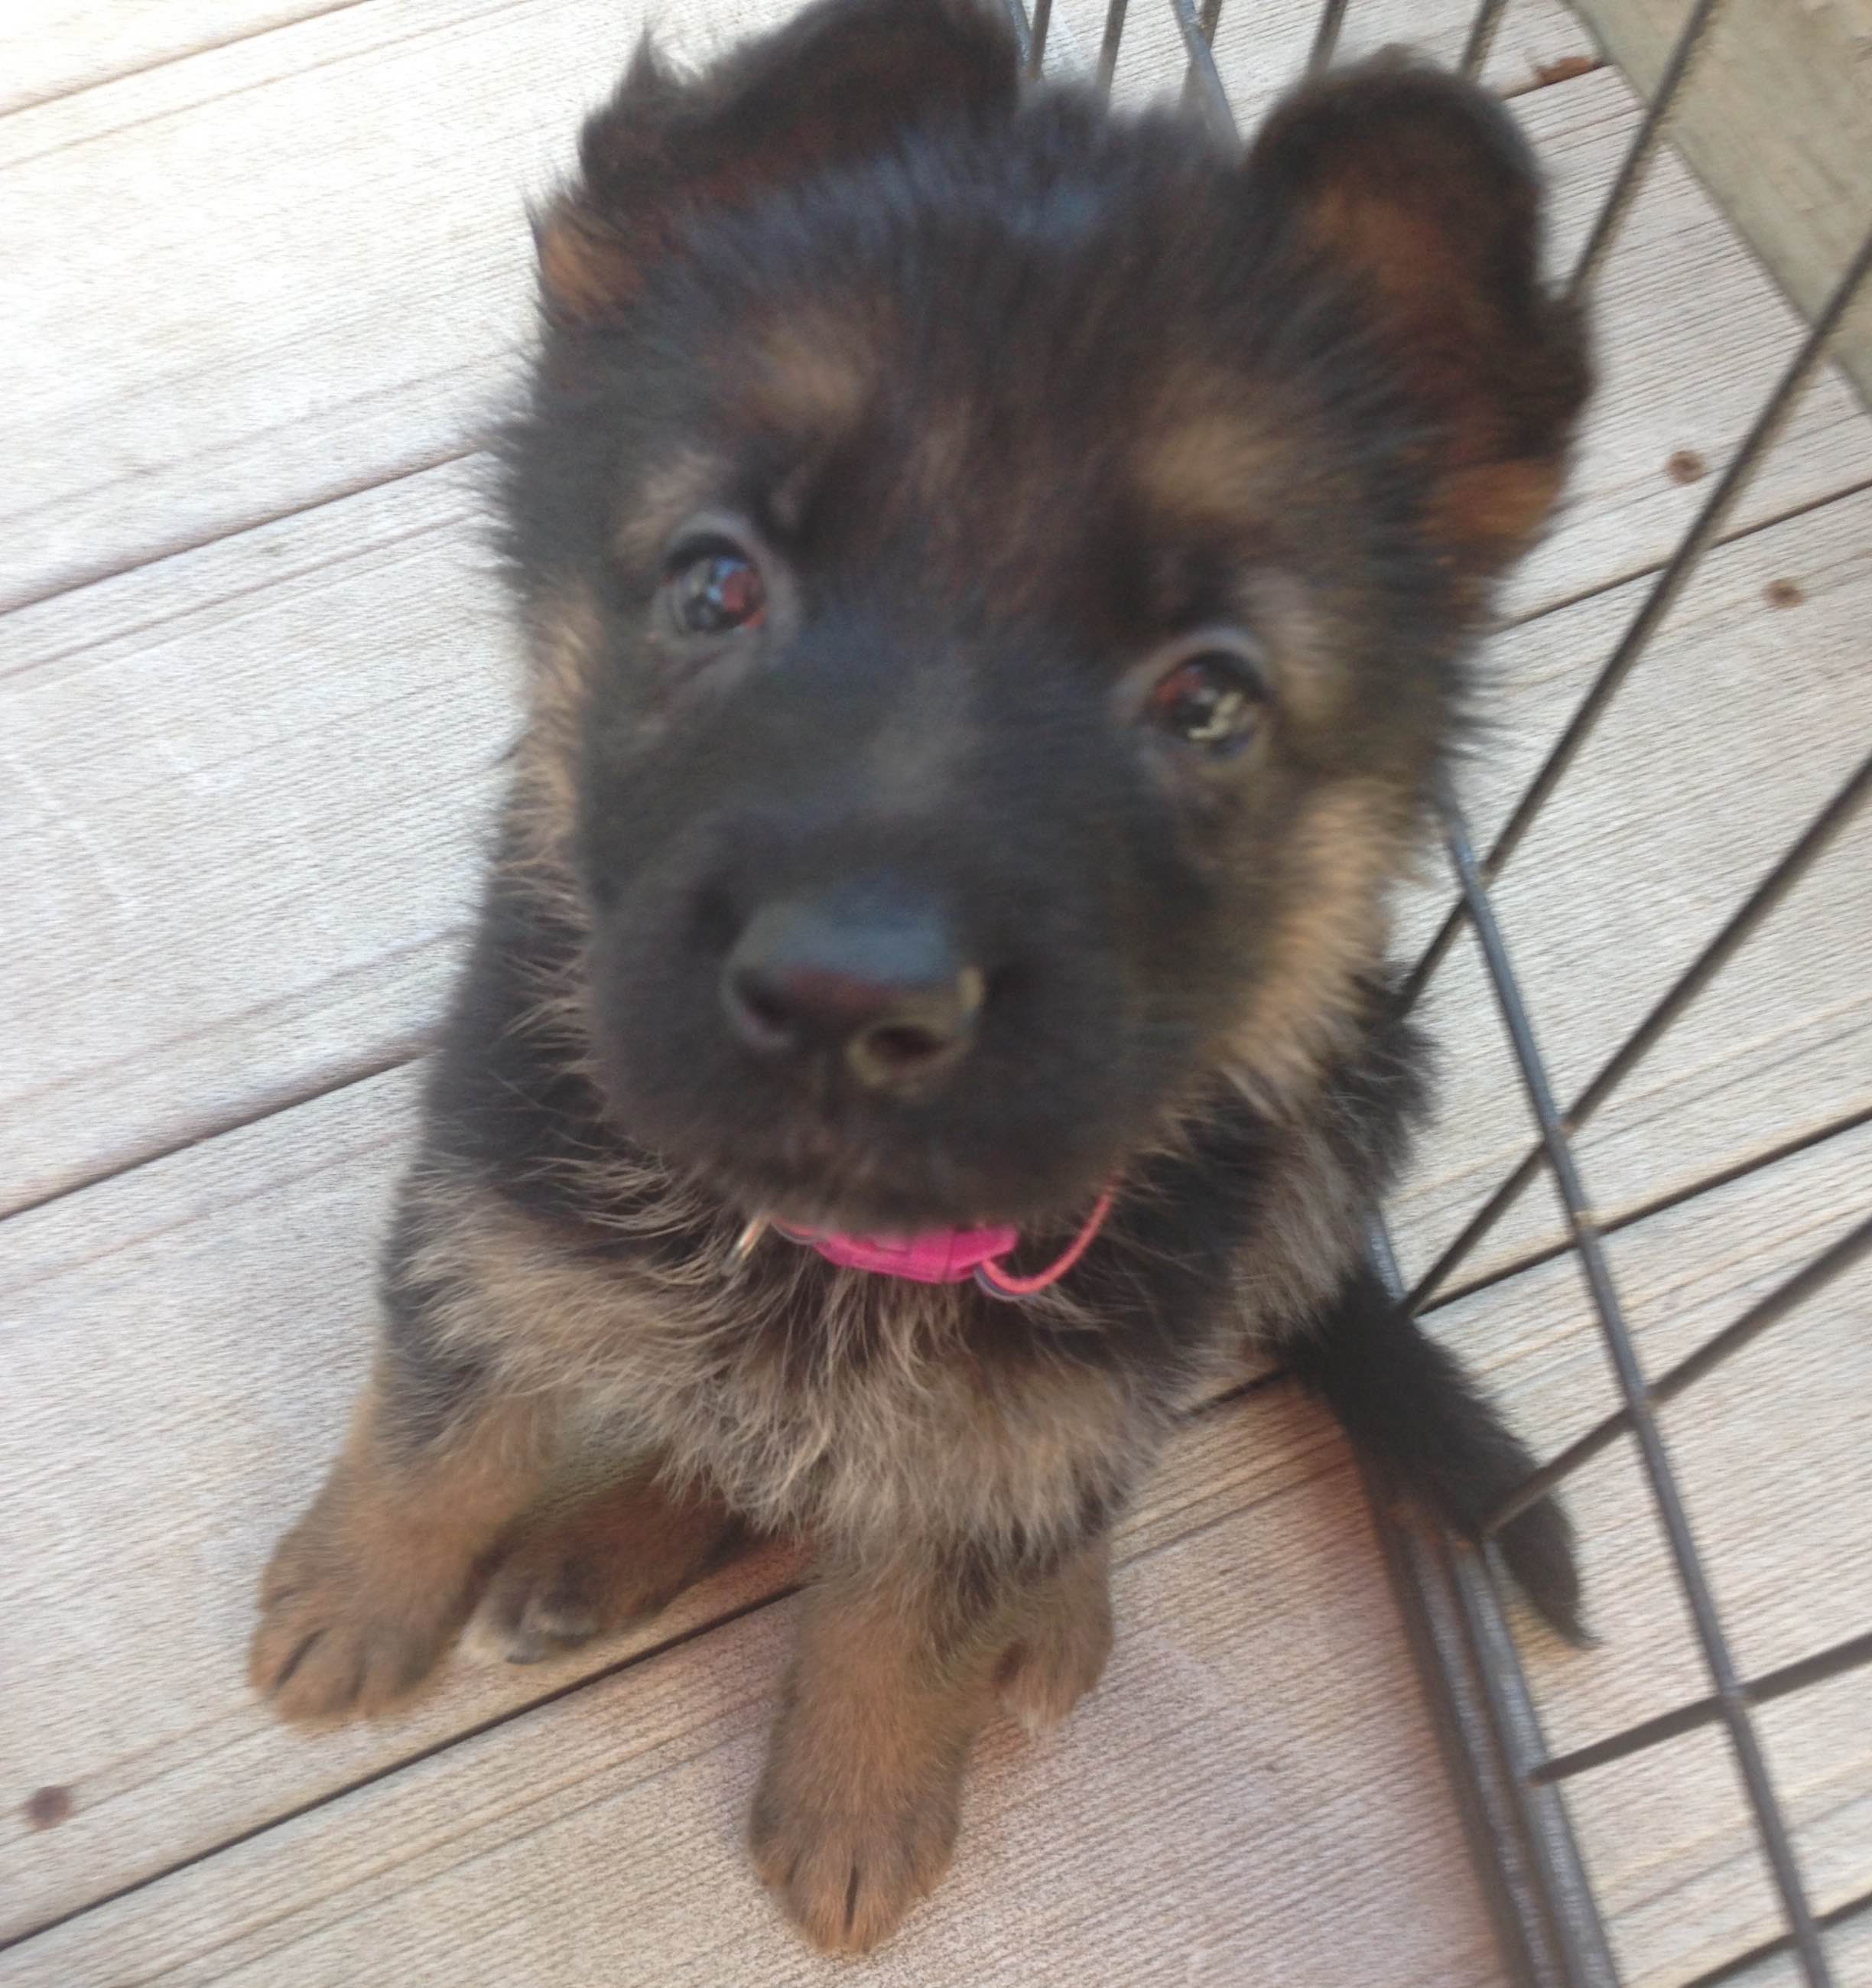 German Shepherd Puppies for Sale in East Troy, Wisconsin,  90 minutes North of Chicago, Illinois.